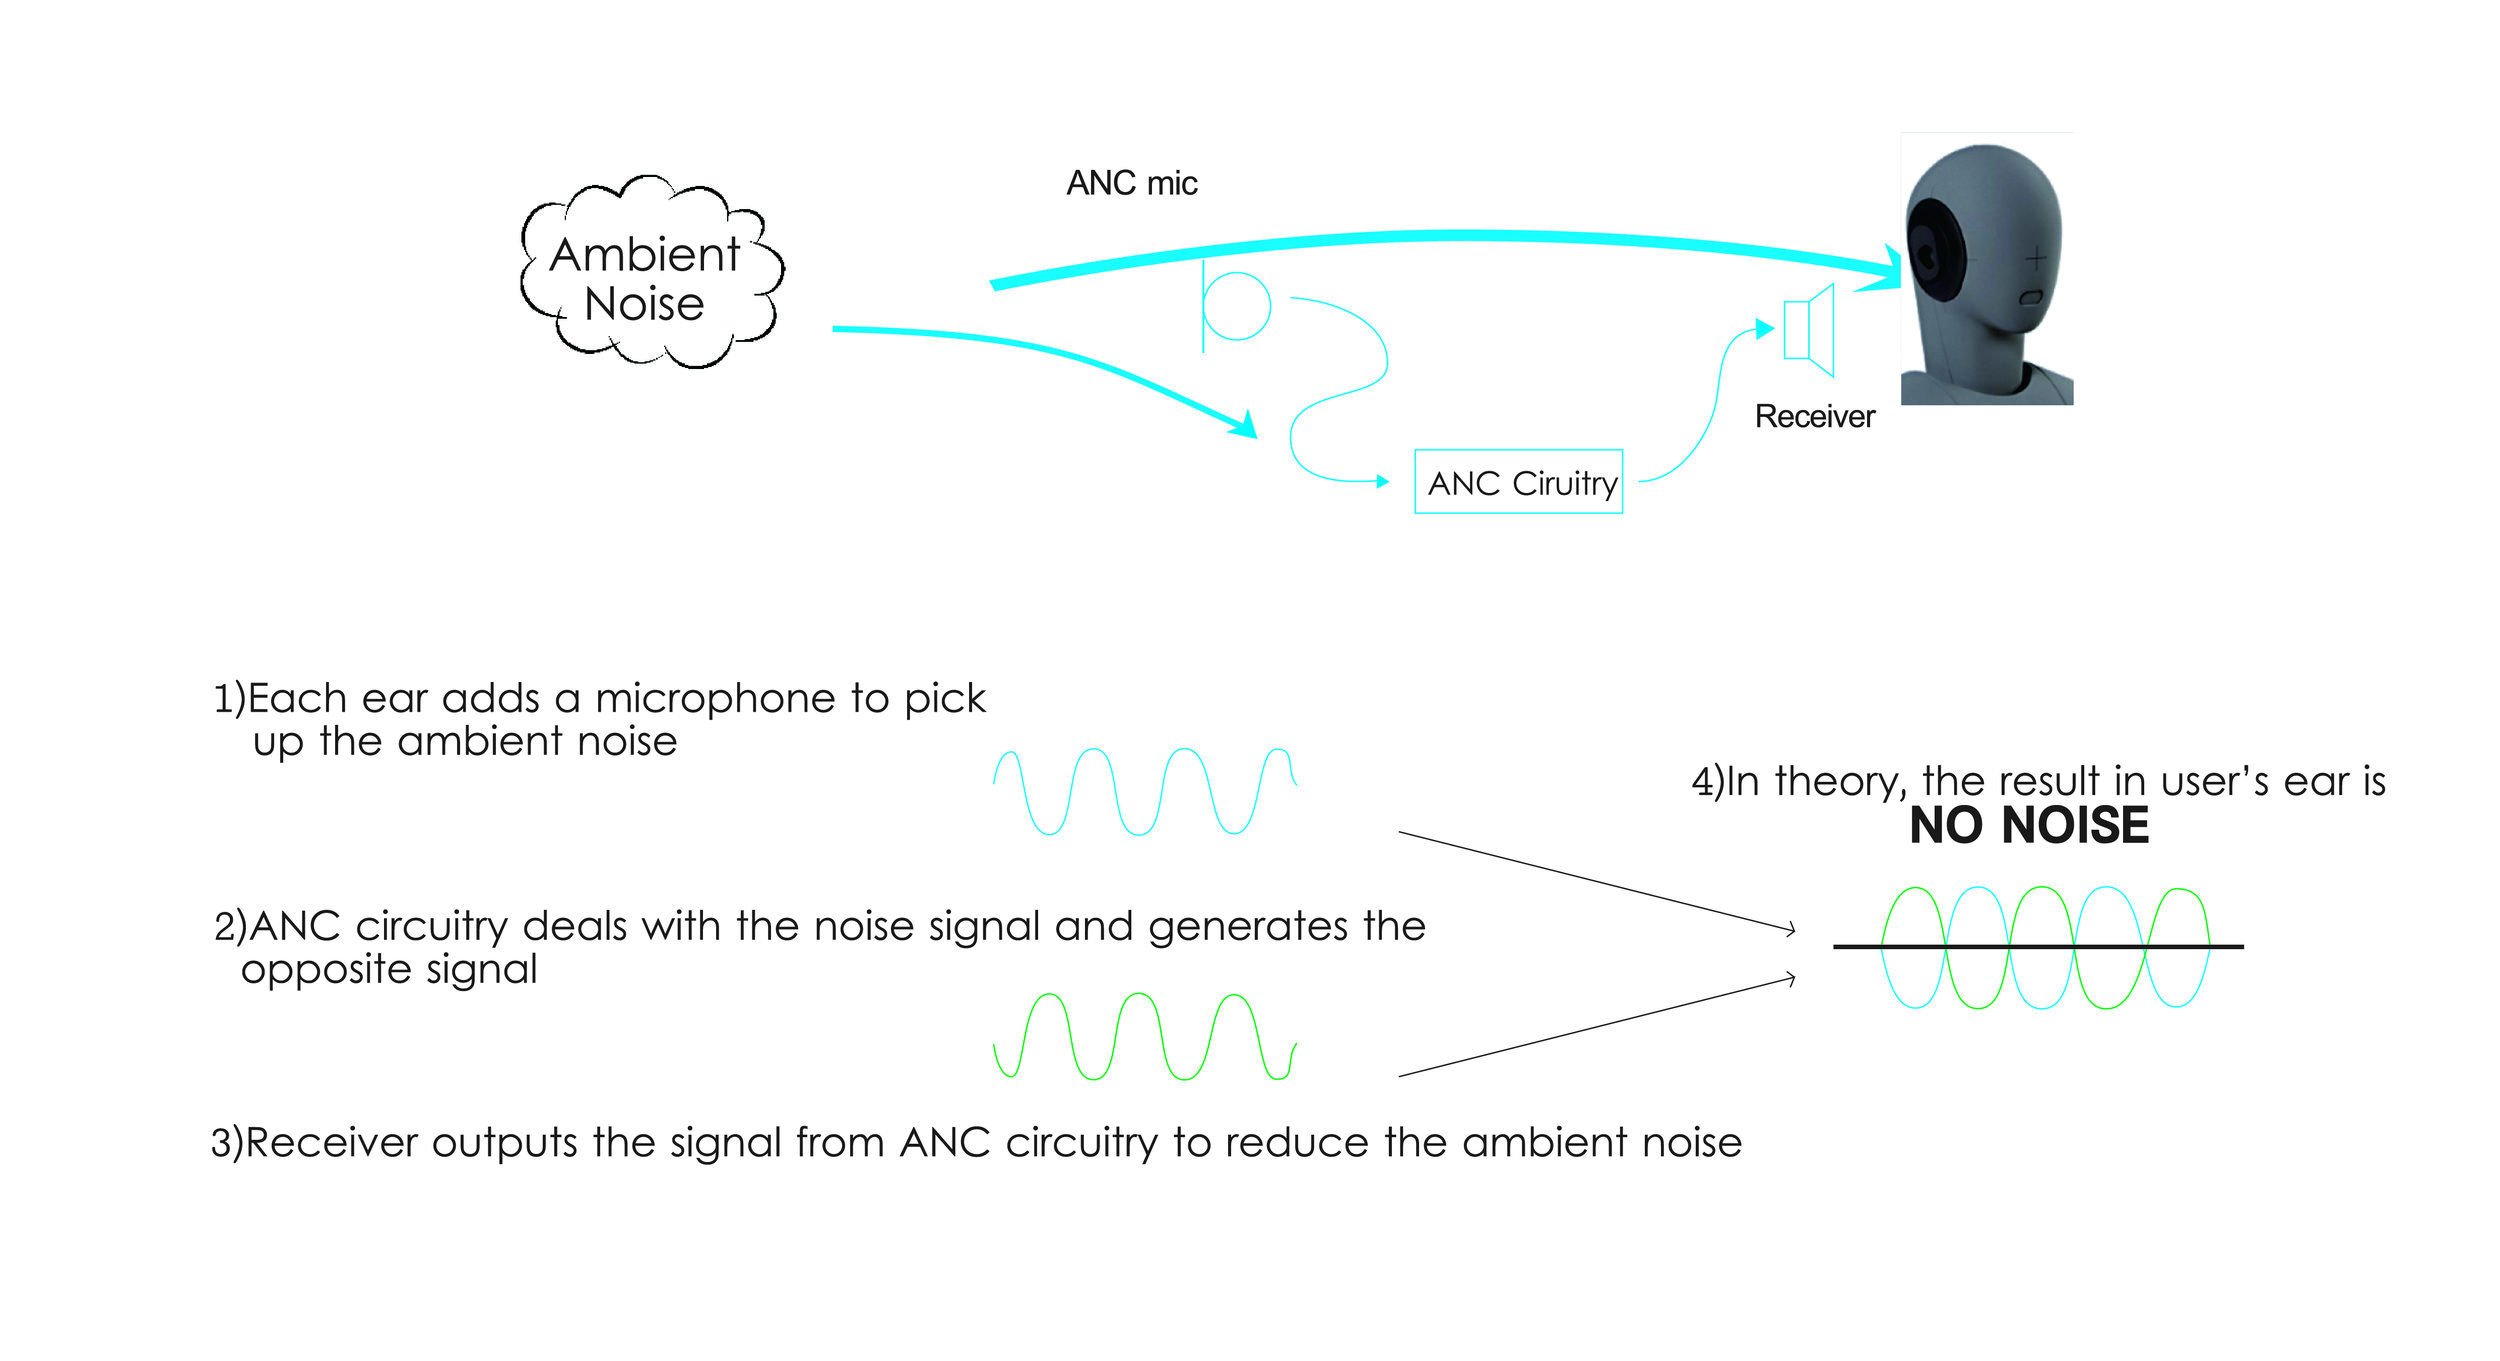 What is ANC - Linner headset absorb ambient sound with microphone, processes the incoming sound waves and creates inverse waves to offset the noise.